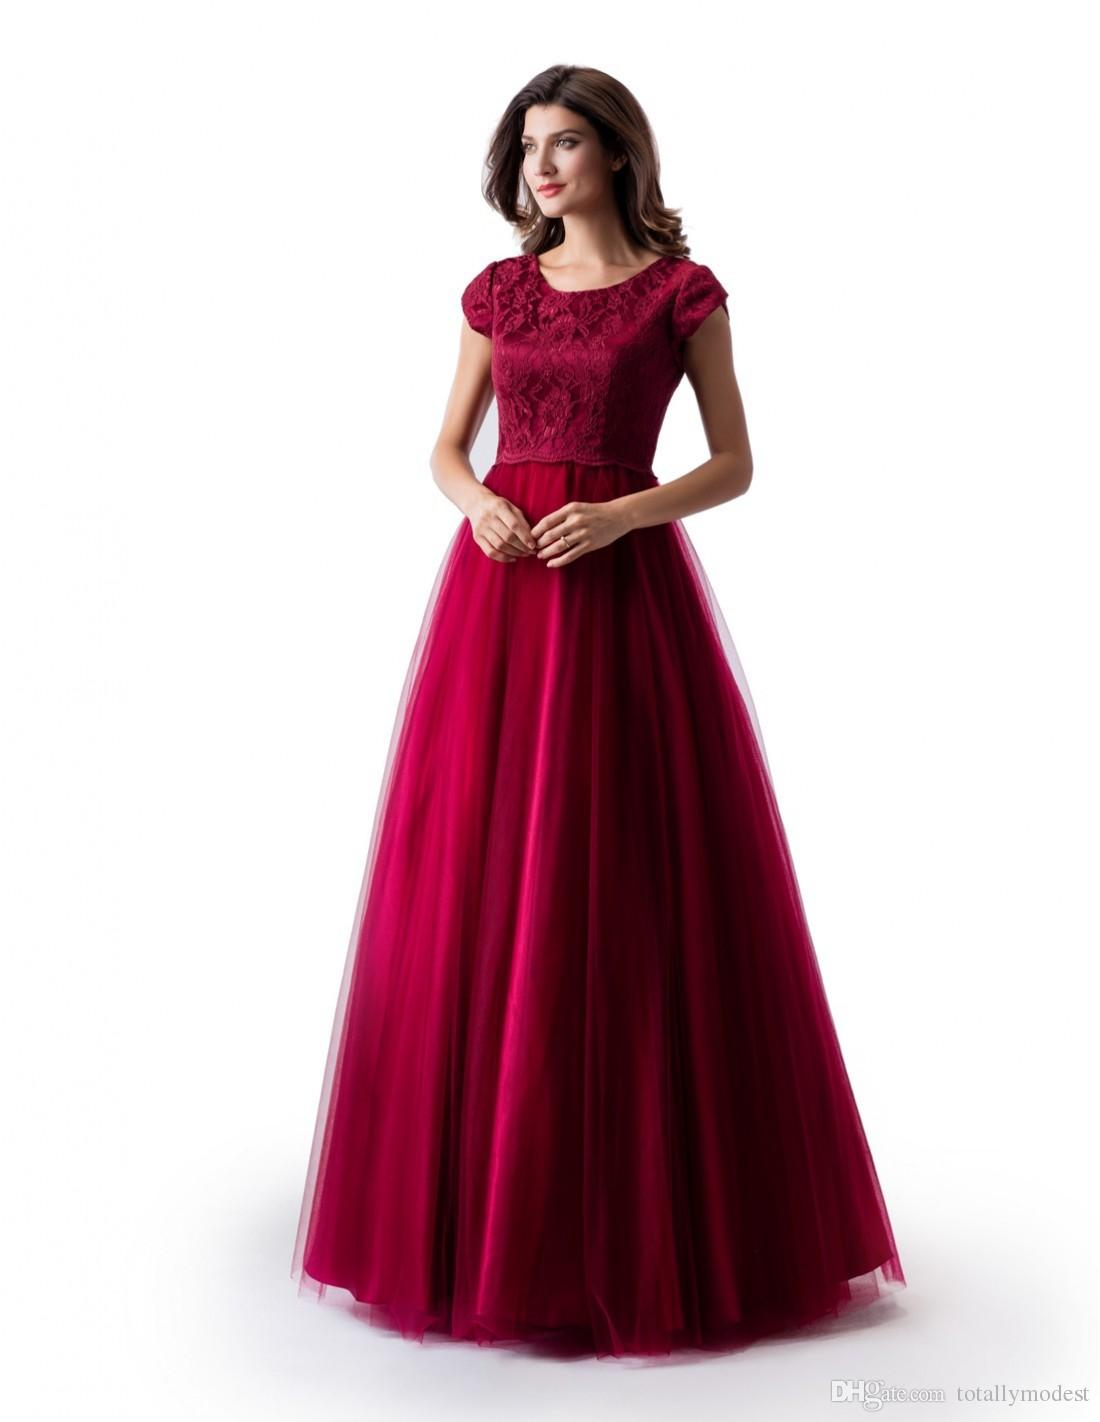 New A-line Dark Red Long Modest Prom Dress With Cap Sleeves Jewel Neck Lace Top Tulle Skirt Floor Length Teens Formal Evening Dress